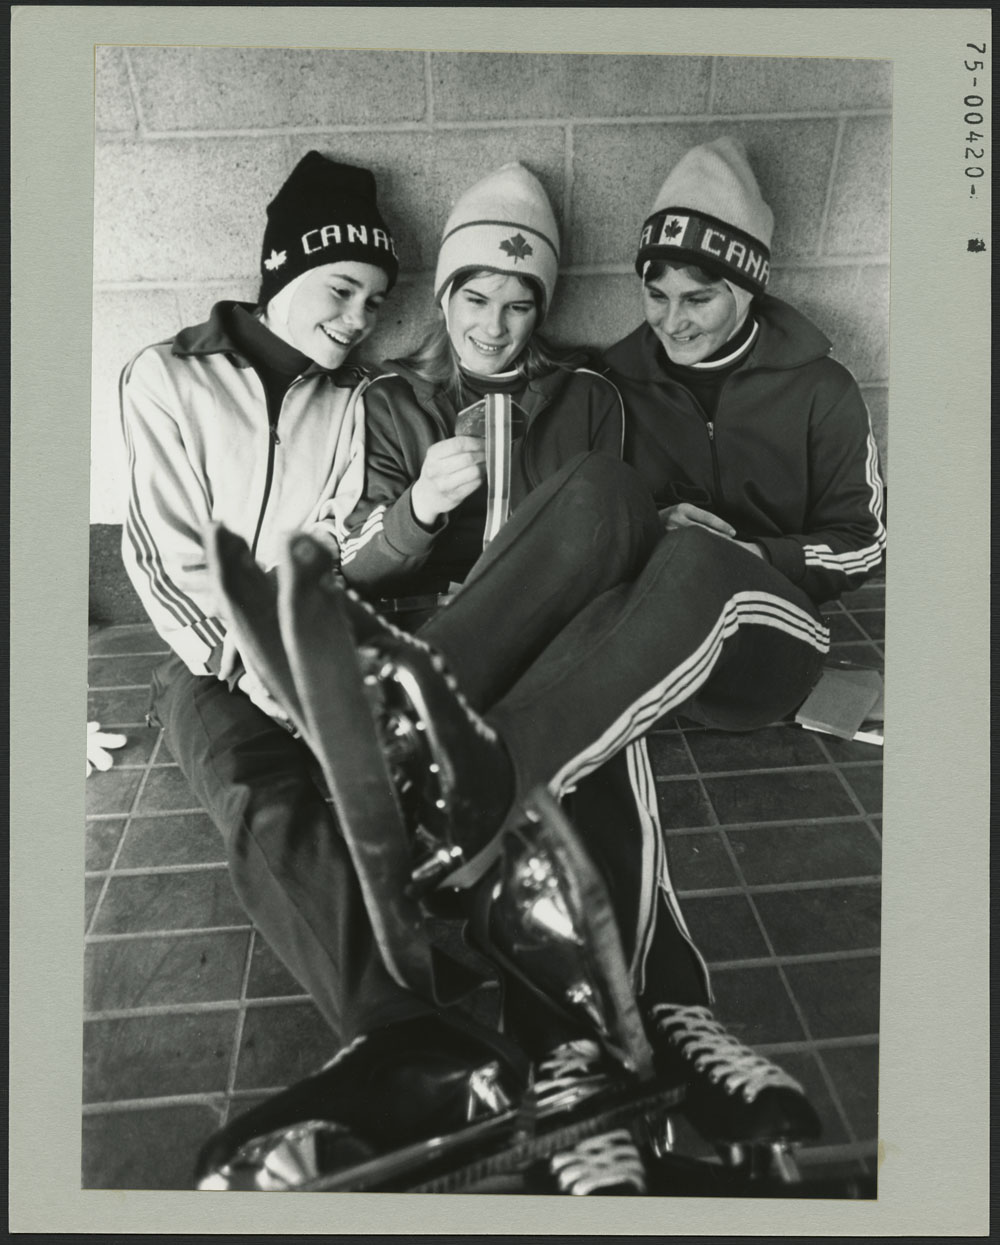 MANITOBA SWEEPS: Three Manitoba speed skaters swept the women's 400-metre event Wednesday to take the first three medals at the Third Canada Winter Games, at Lethbridge, Alberta. Gold medalist Kathy Vogt is flanked by teammates Pat Durnin (left) and Barbara Johnston, who tied for second-place silver